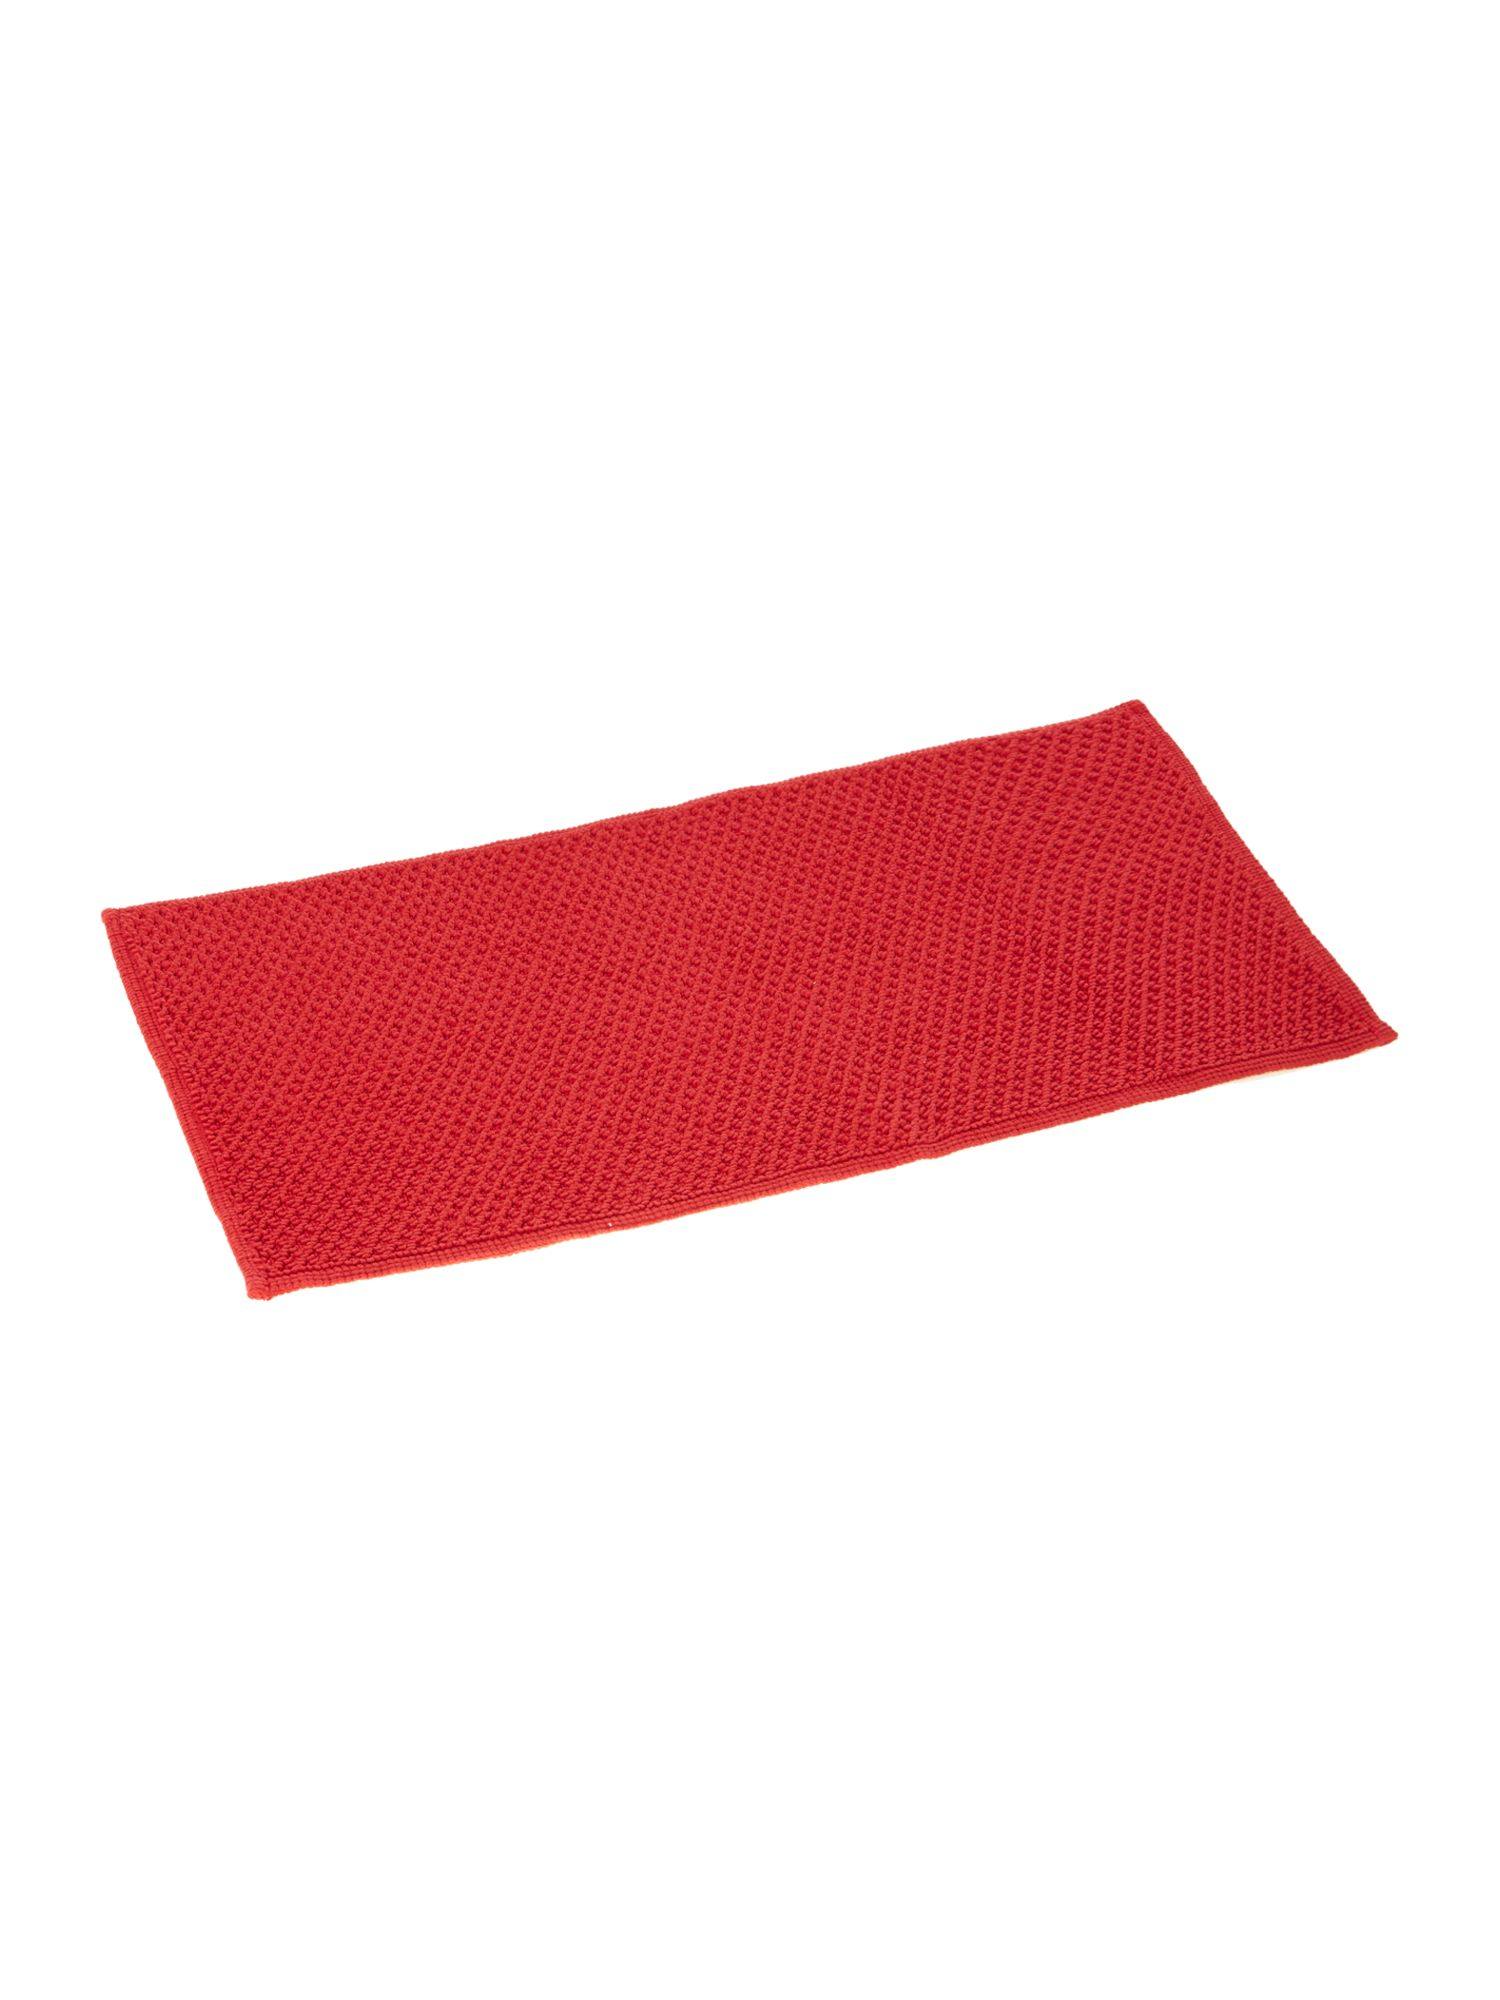 COTTON BOBBLE REVERSIBLE BATHMAT RED